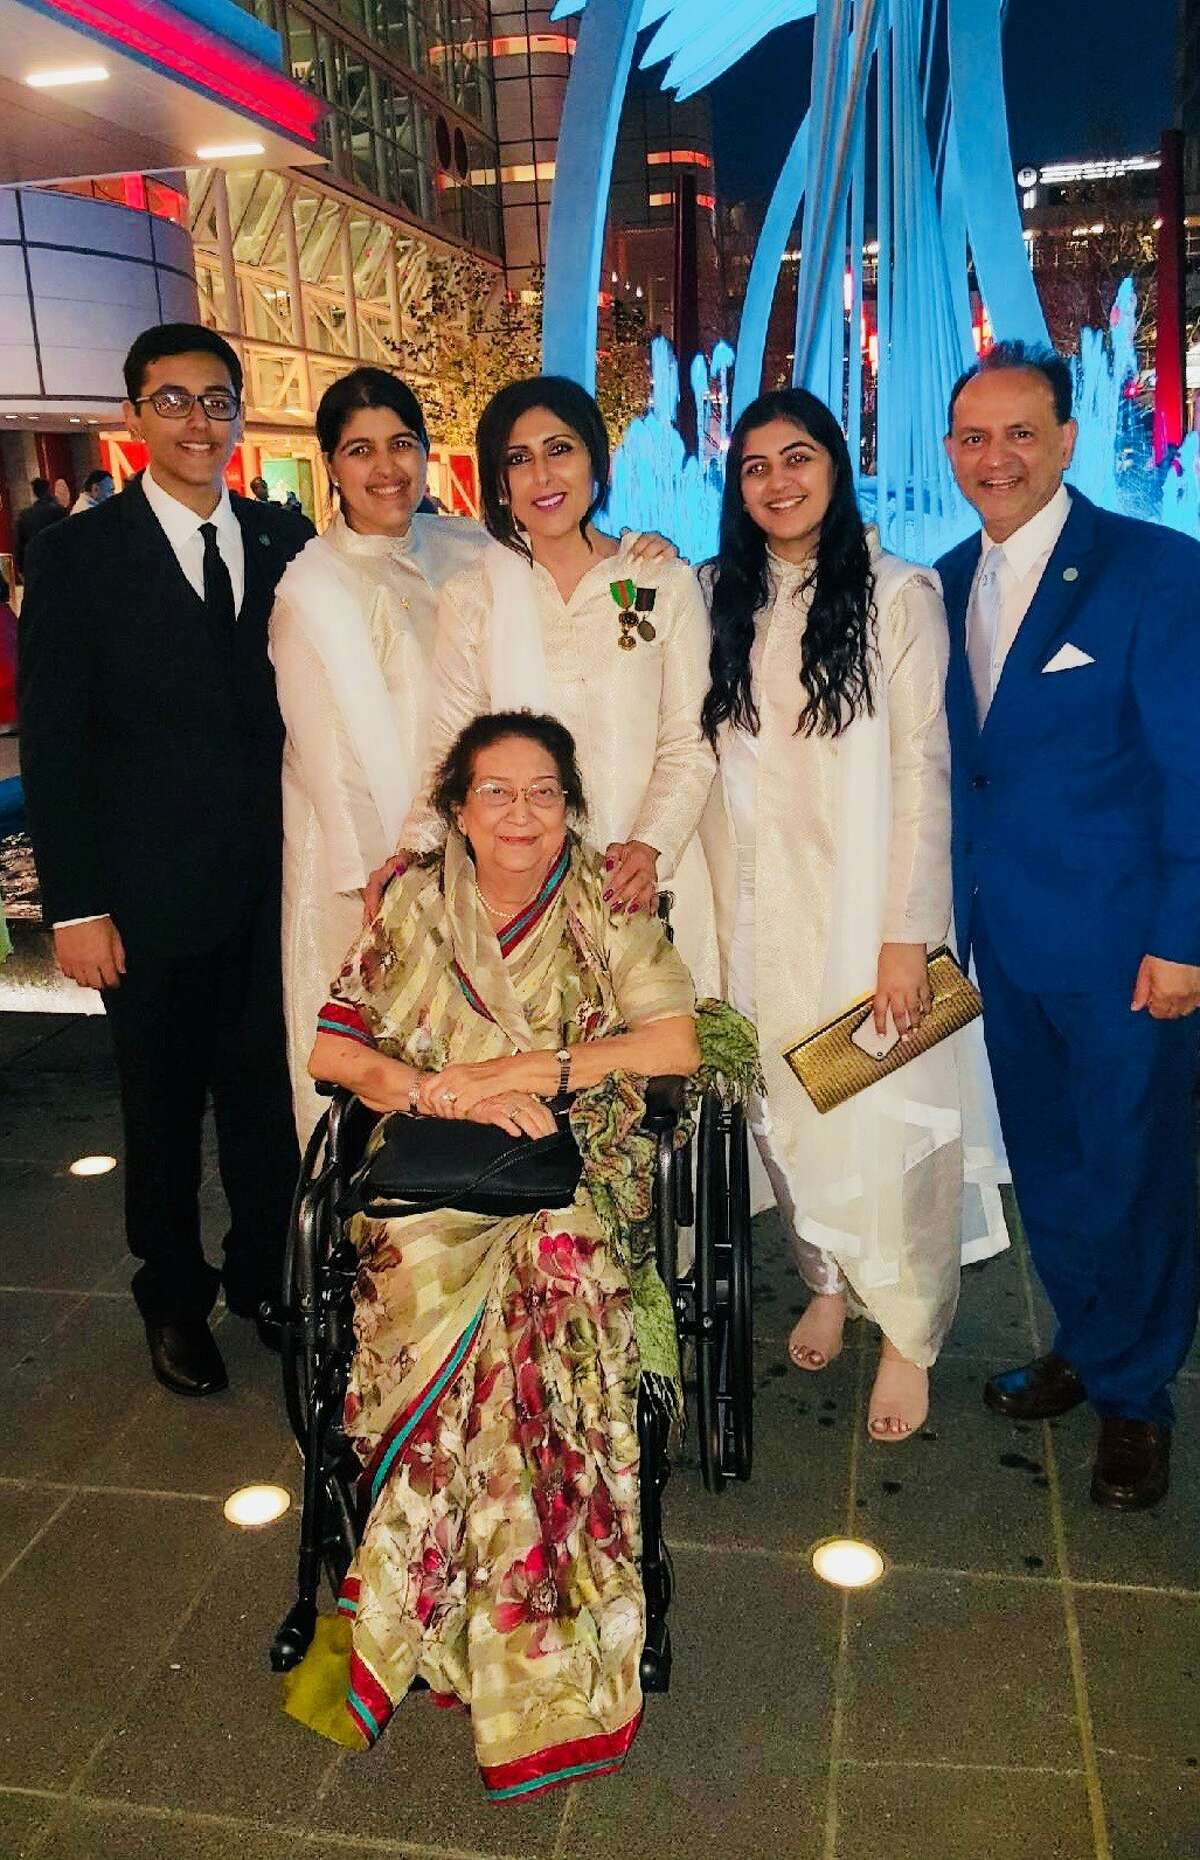 Yasmin Thawerbhory, center, attends the celebration marking the Aga Khan's 60th year as spiritual leader of the Ismaili Muslims.